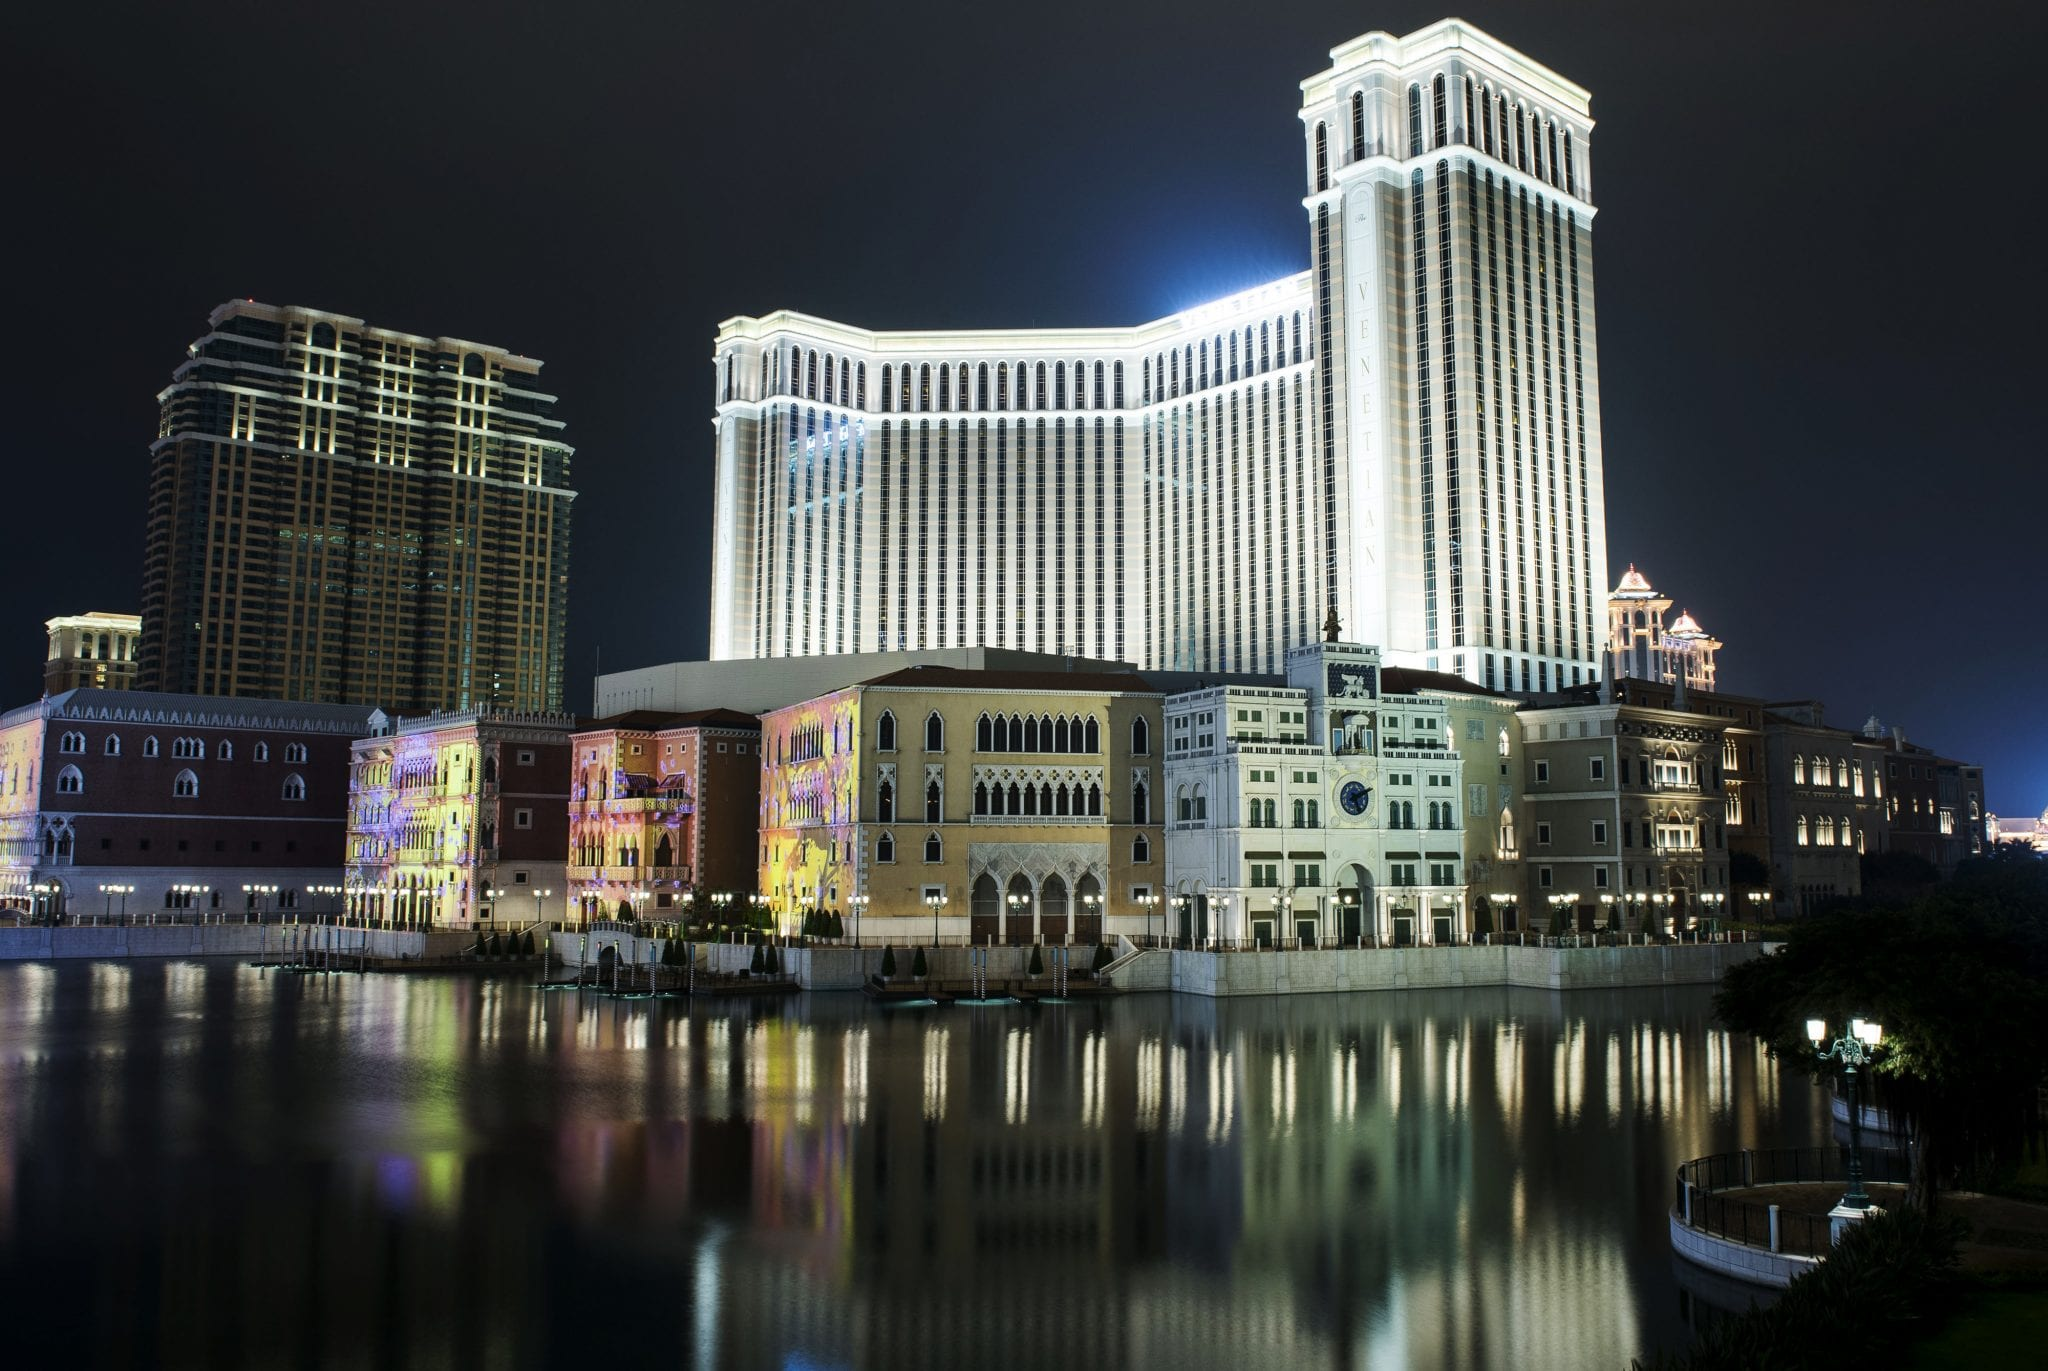 Las Vegas Casino Hotels on the Strip Ponder Future Growth Prospects